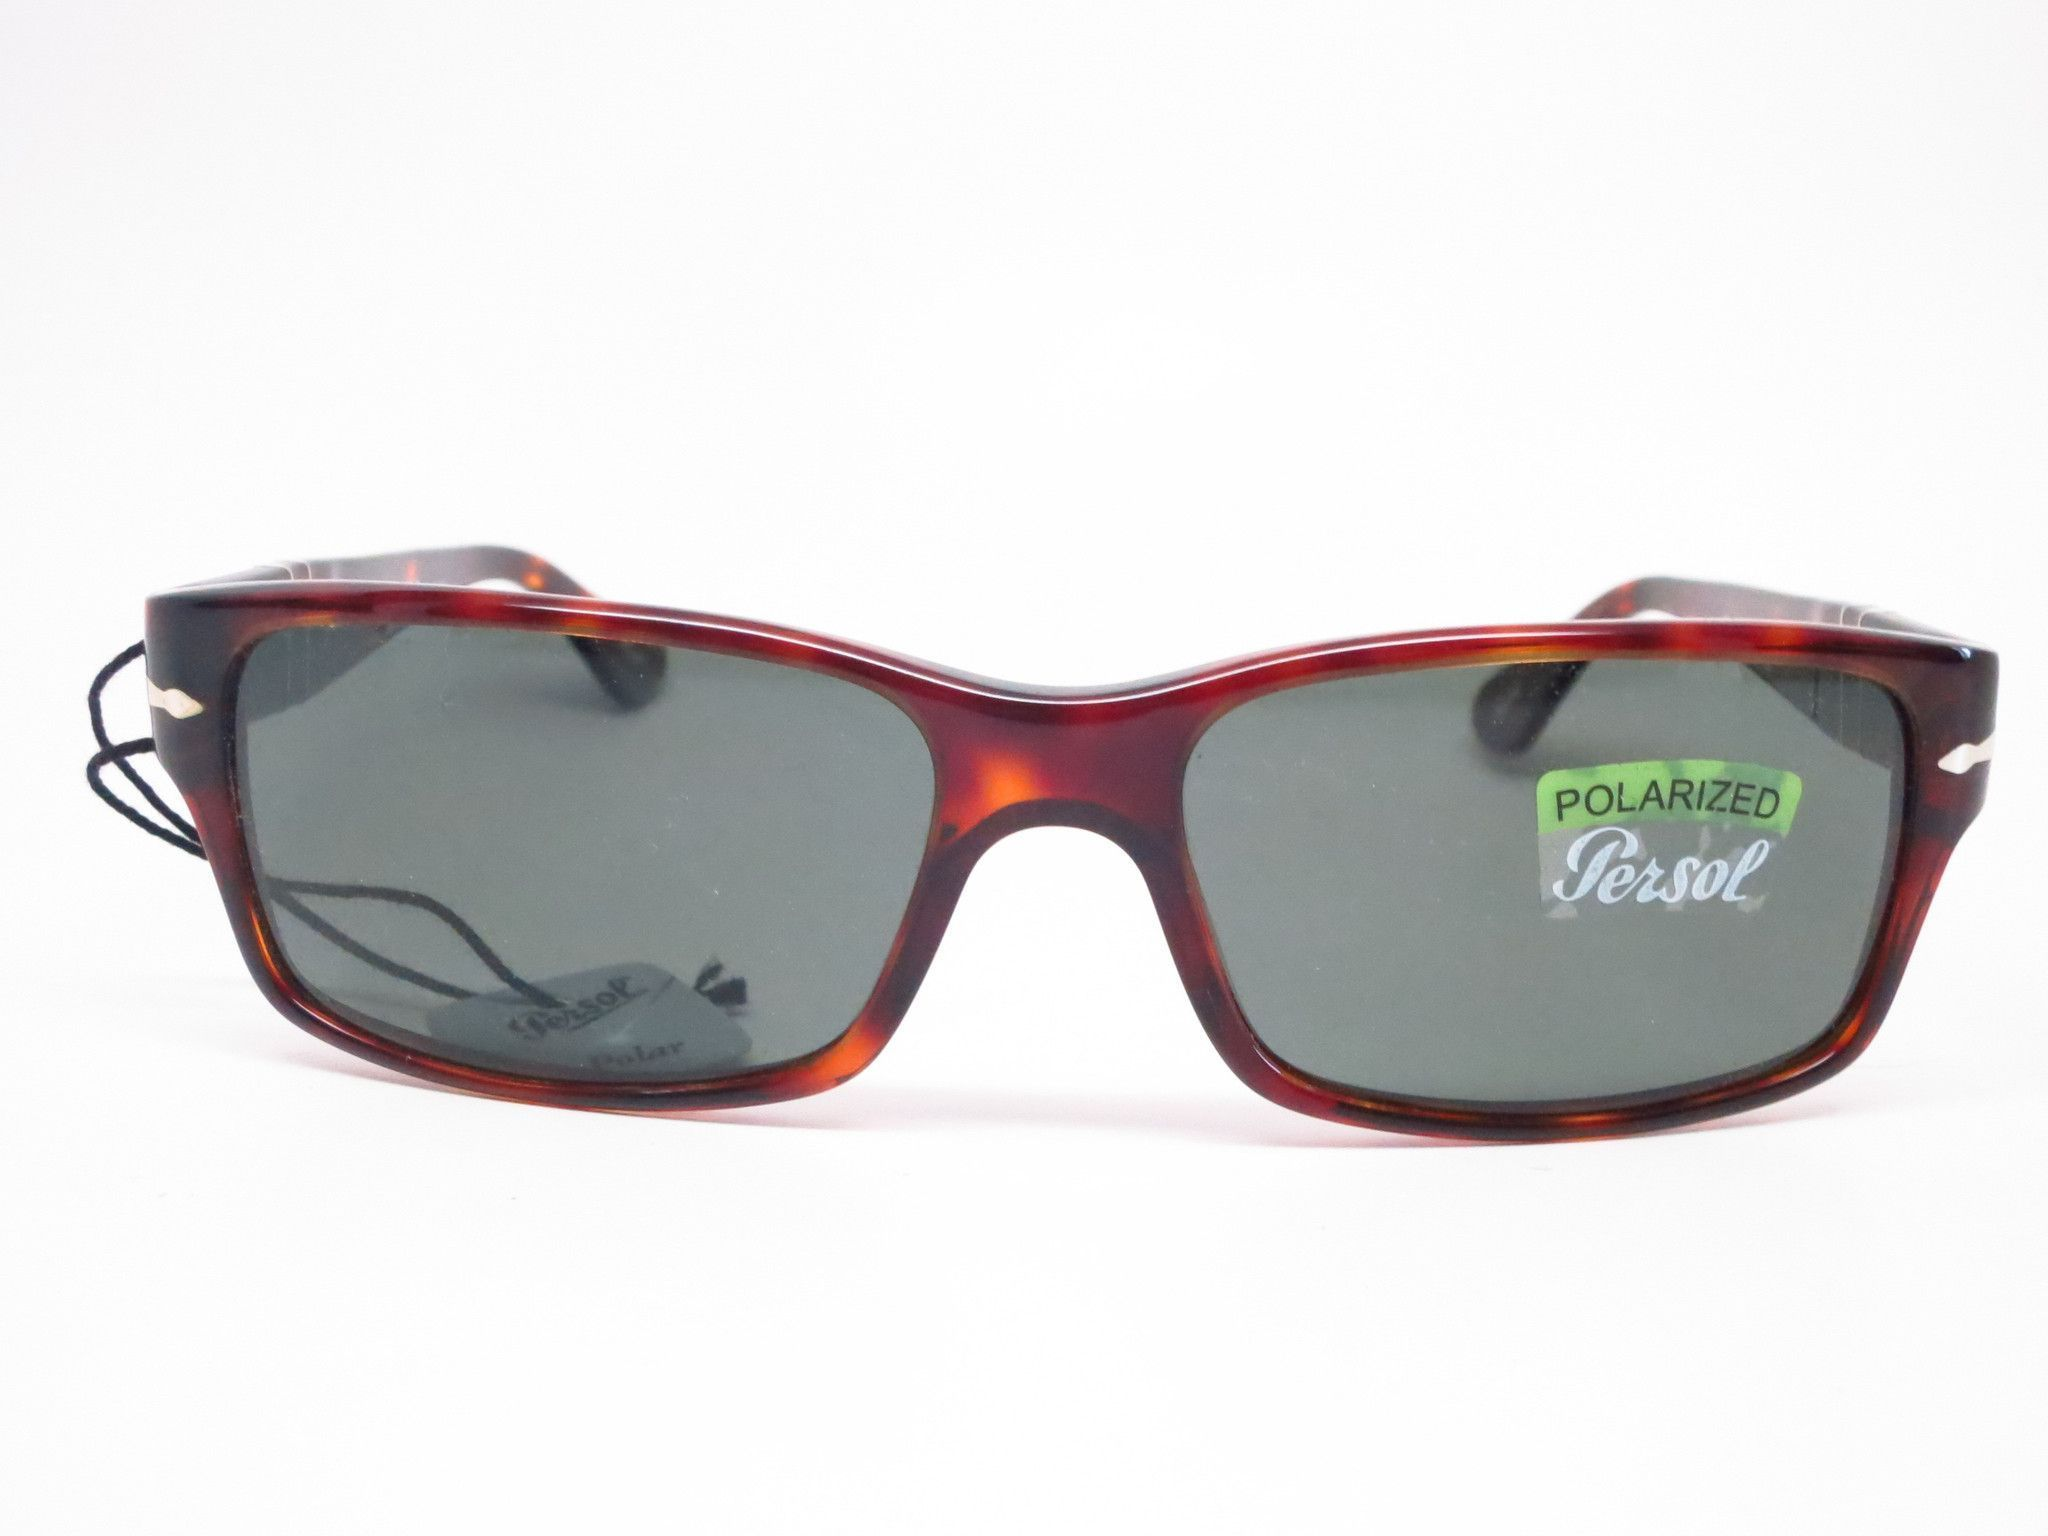 3ec6a6fbb02 Product Details of Persol PO 2803S Sunglasses Brand   Persol Model Name    PO 2803S Color